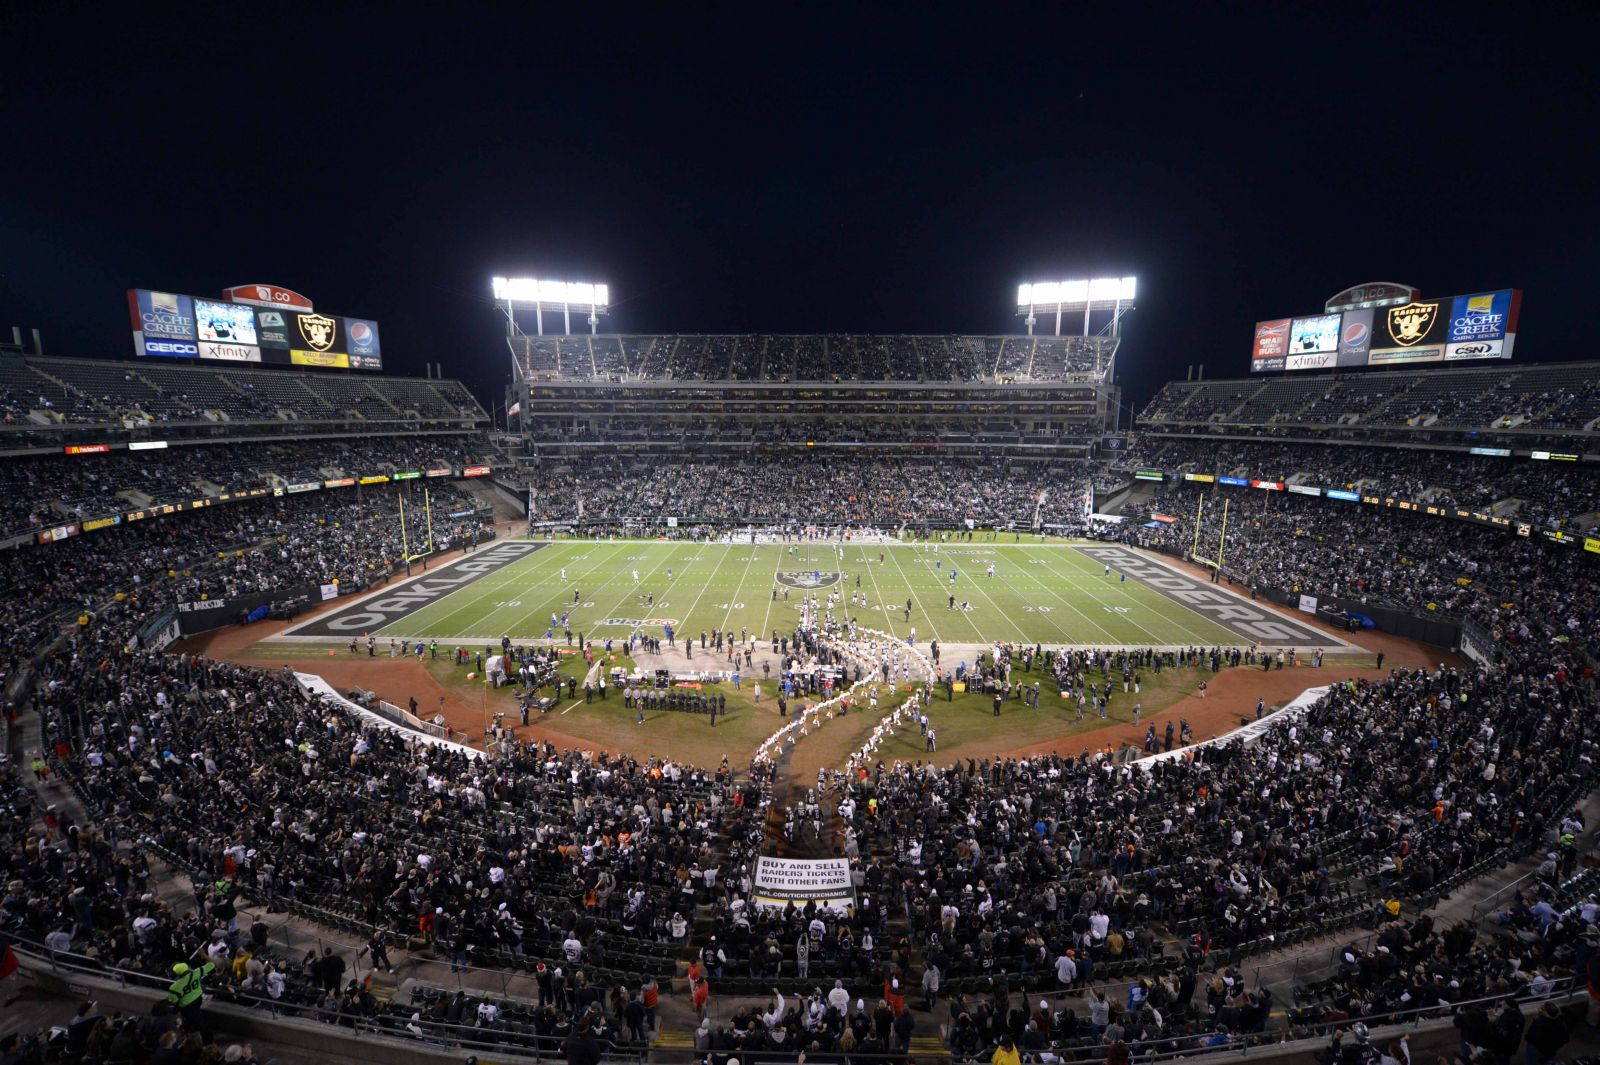 Raiders Hope To Build 800 Million Stadium This Given Sunday